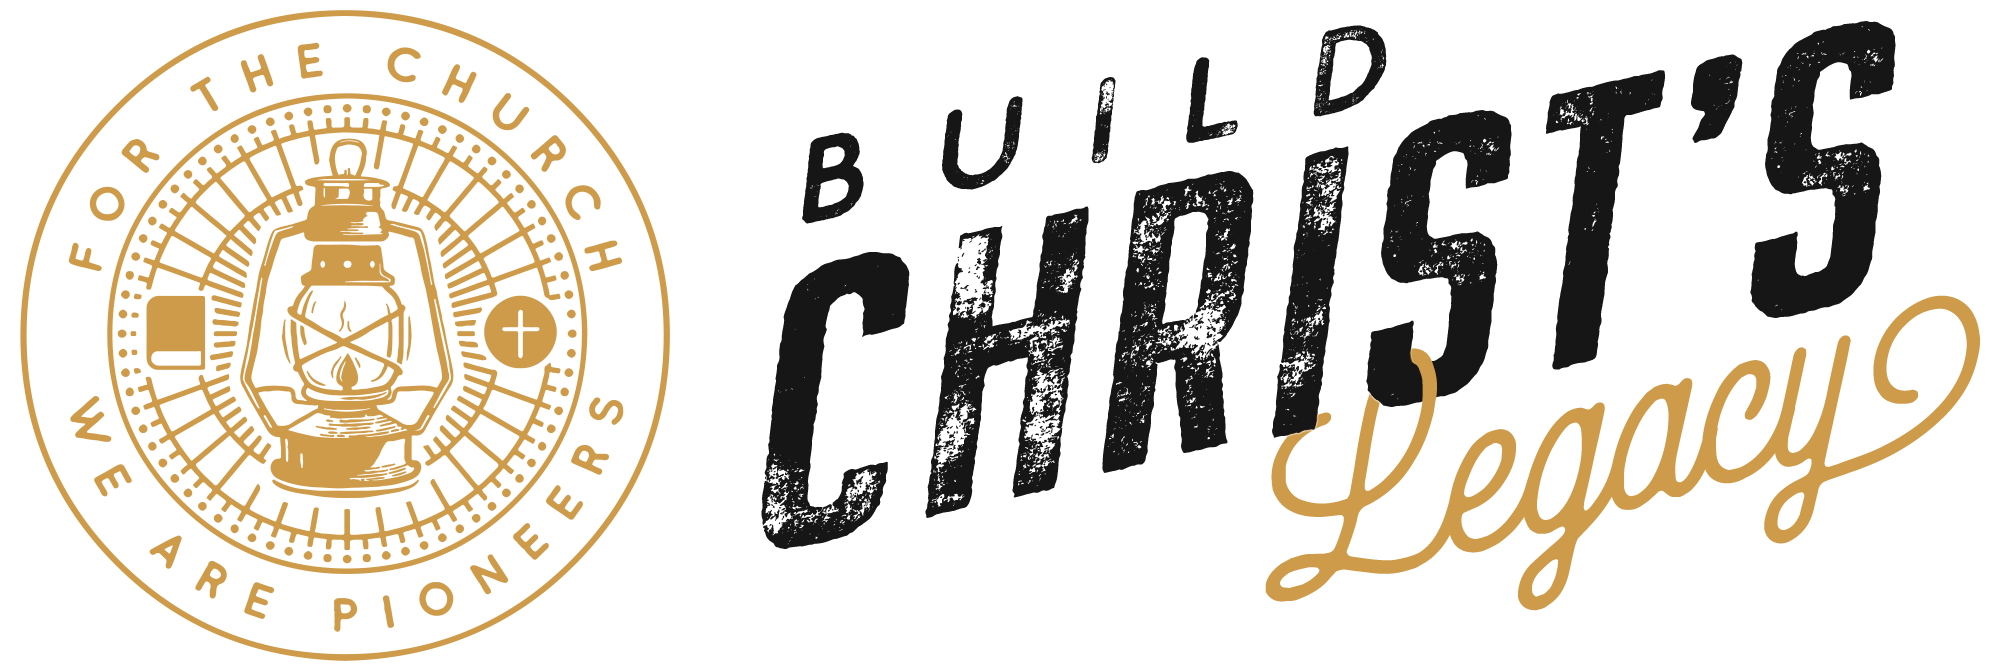 Build-Christs-Legacy.png